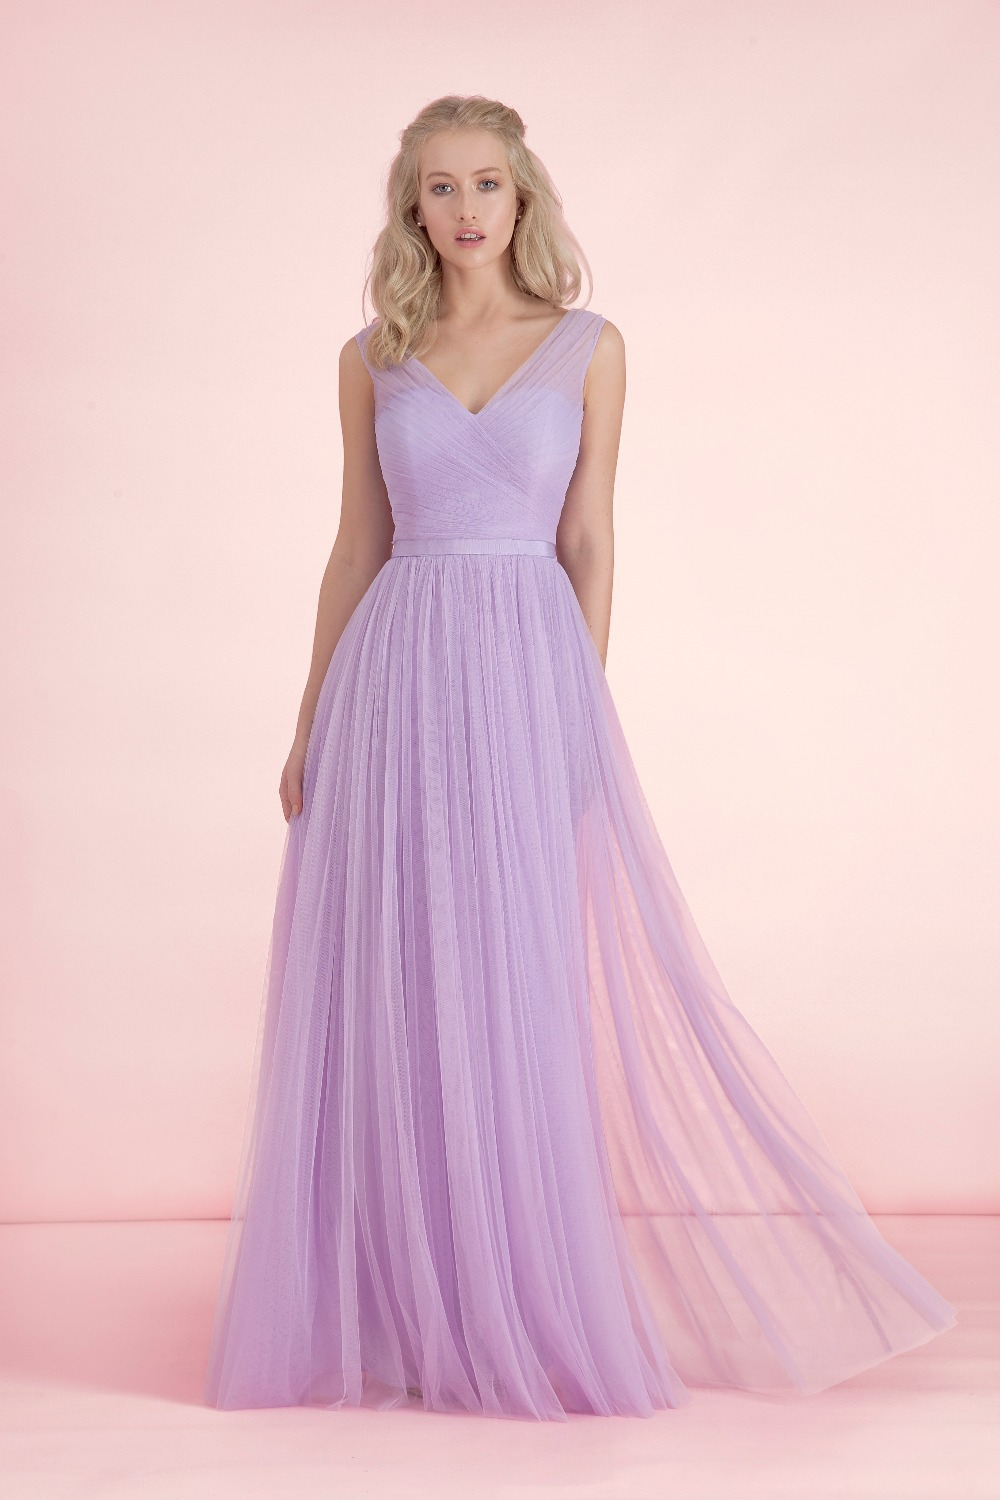 list detail pale lavender wedding dress lavender wedding dress Purple and White Ombre Wedding Dress Strapless with Lace and Organza